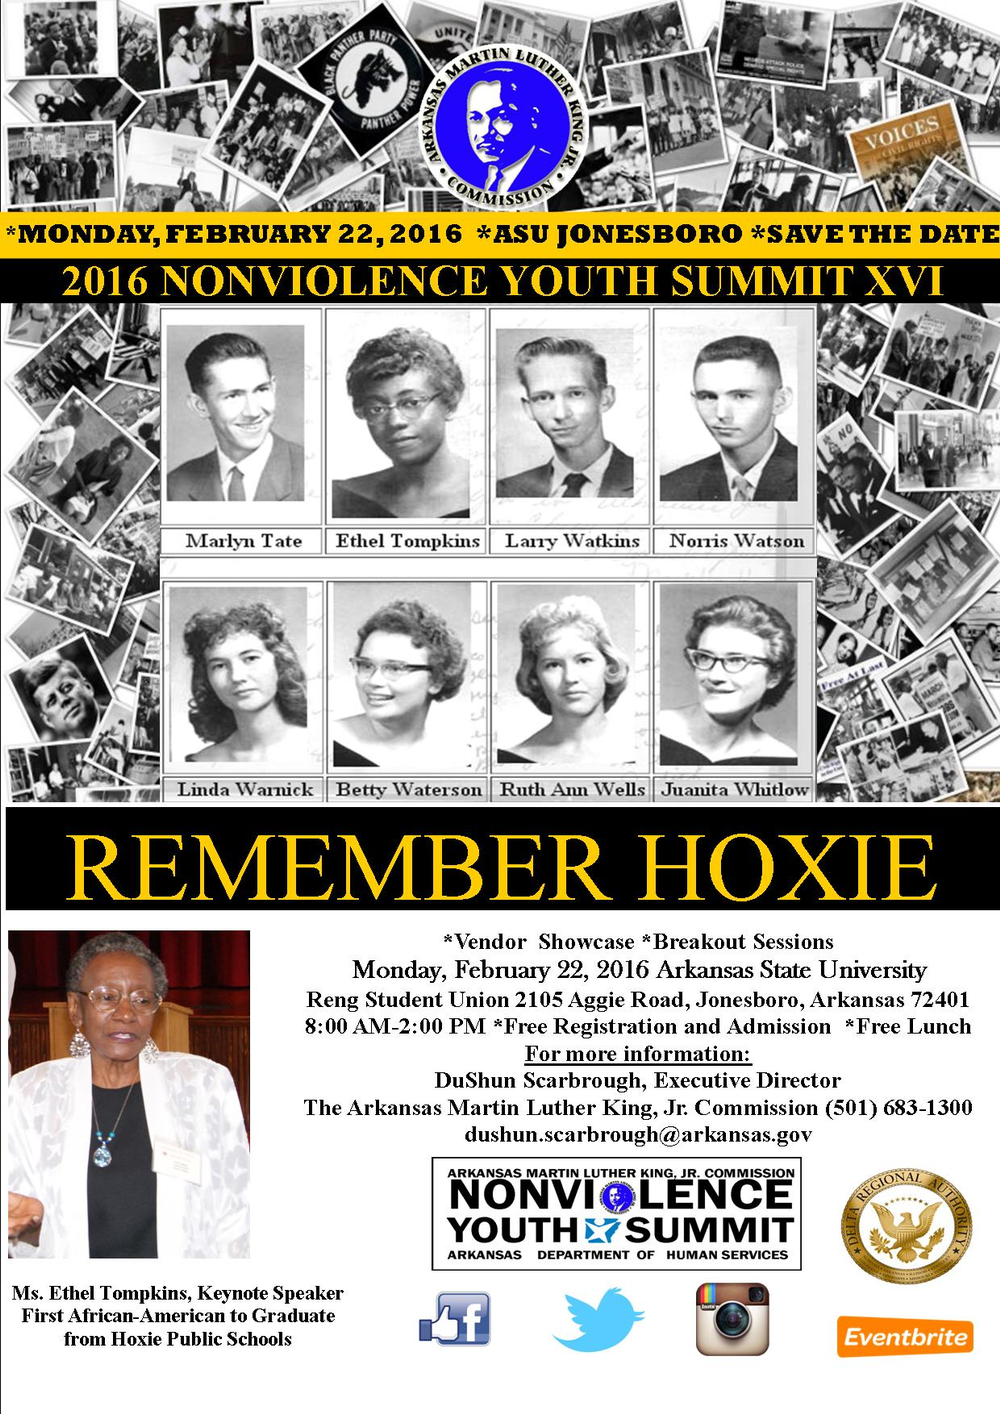 MLK Commission to Present Nonviolence Youth Summit Featuring Keynote Speaker Ethel Tompkins